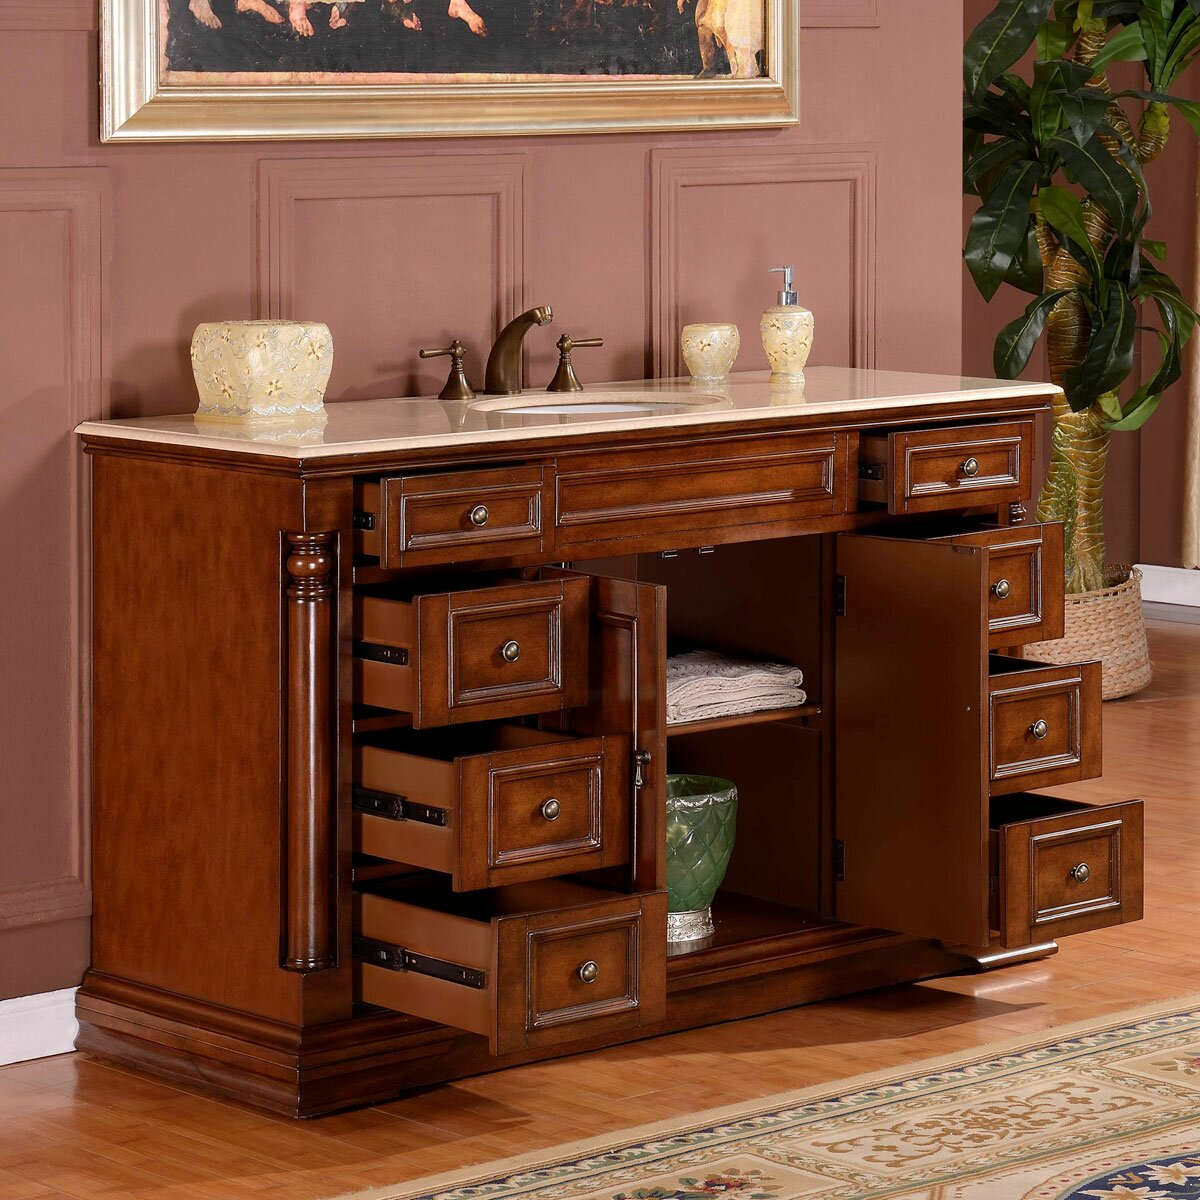 silkroad exclusive 58 single sink cabinet bathroom vanity